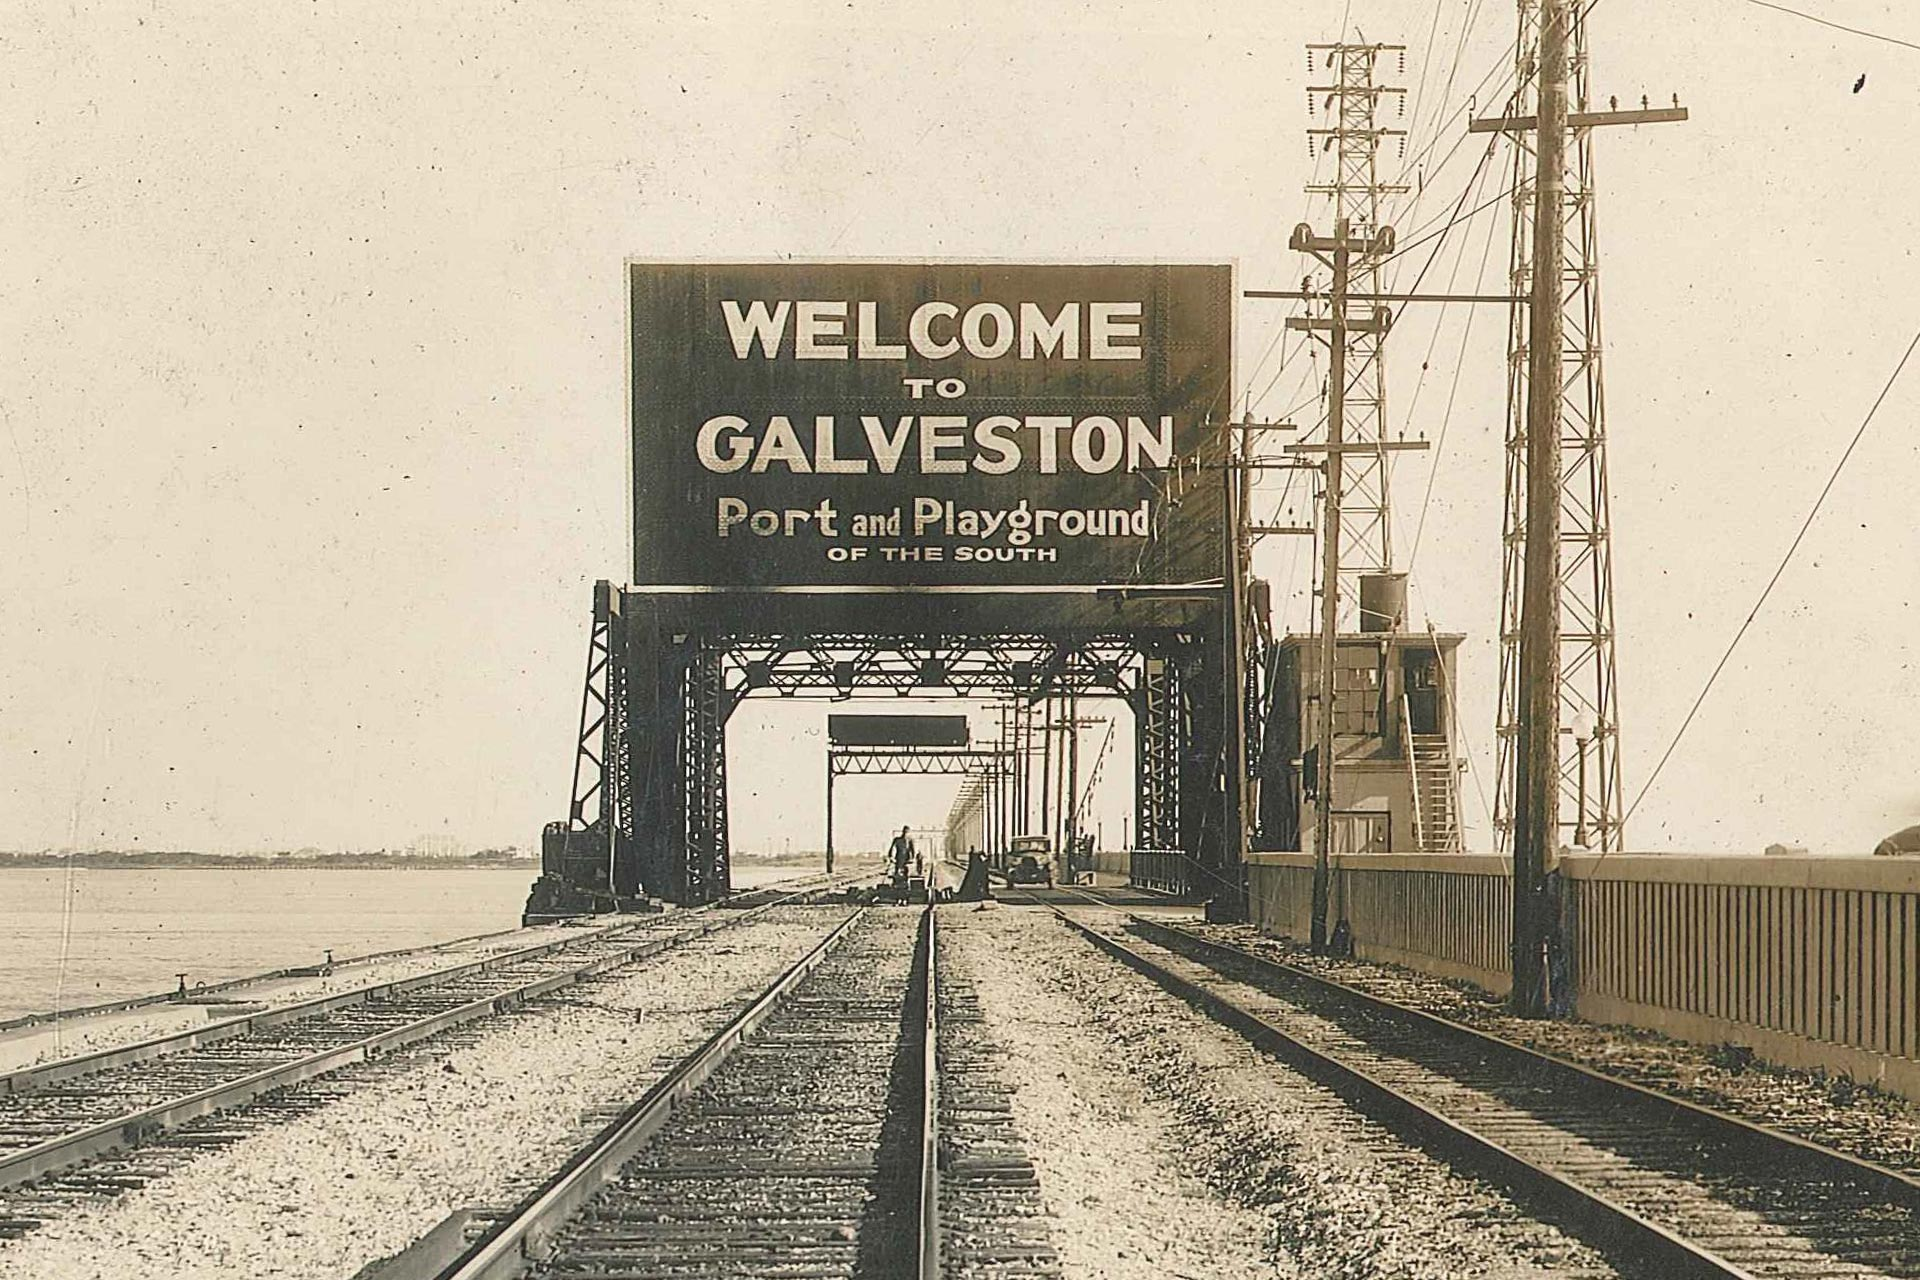 About Galveston Historical Foundation